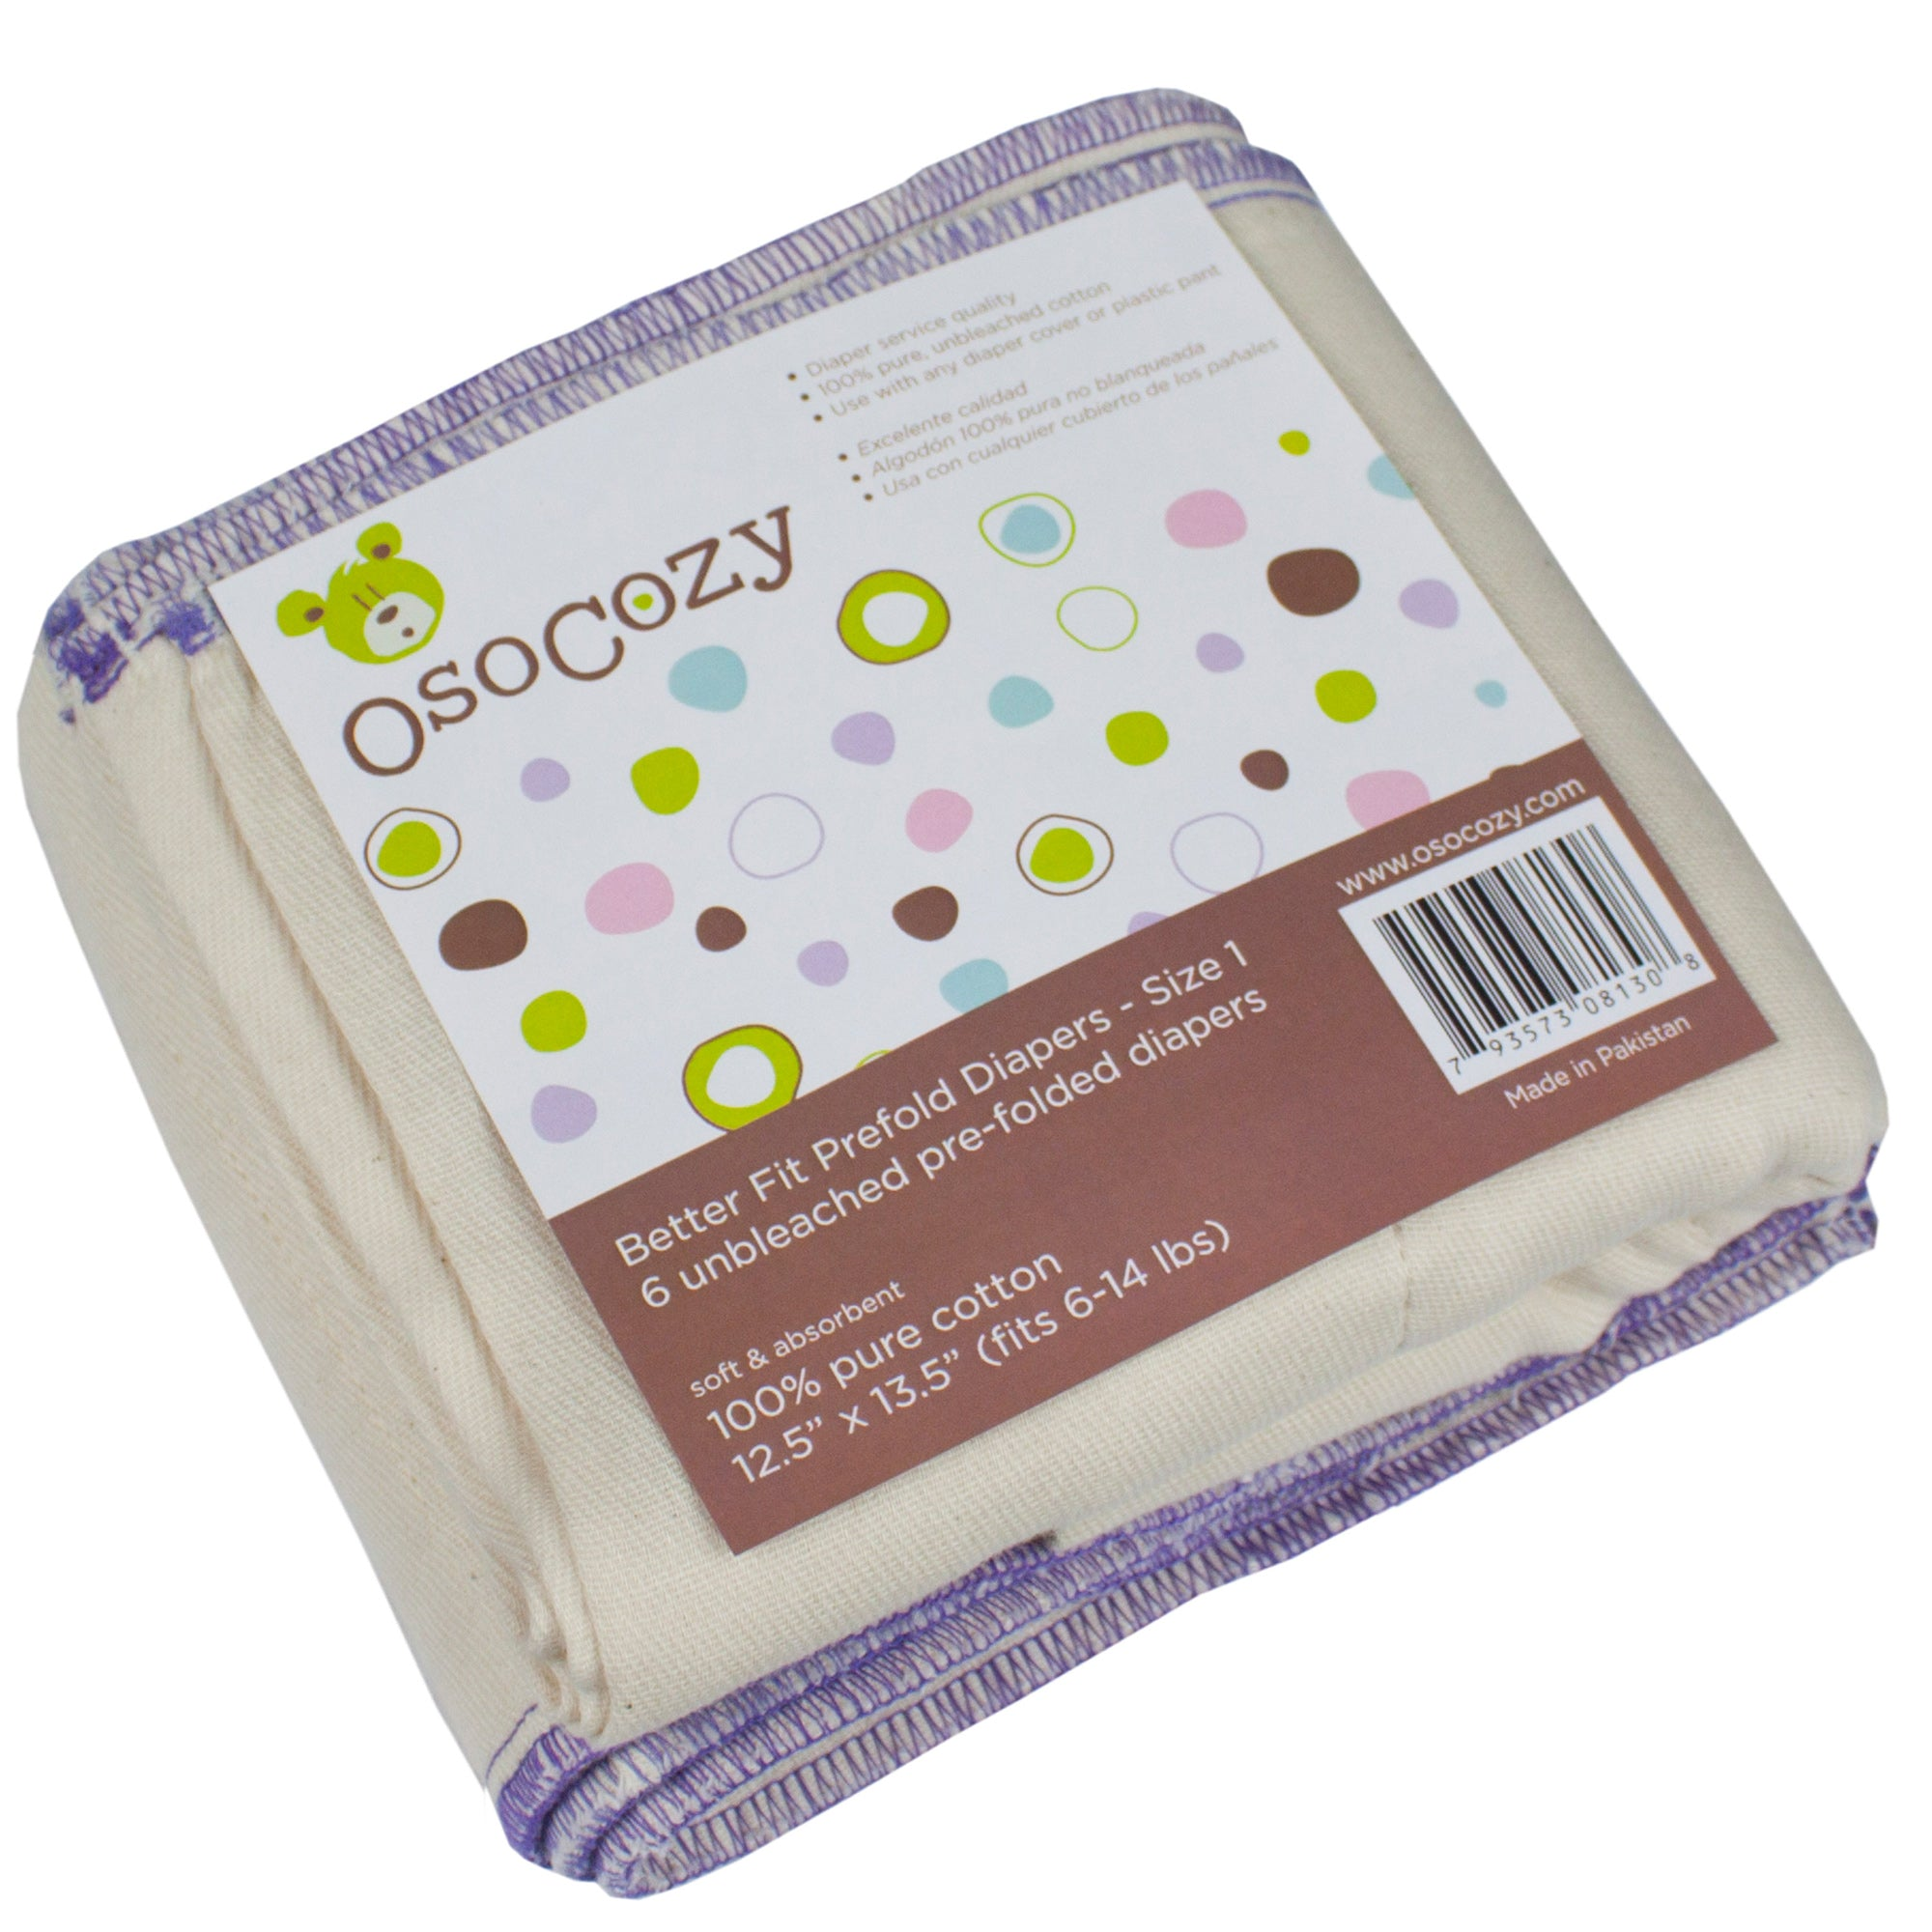 OsoCozy Better Fit Diapers - 6 packs